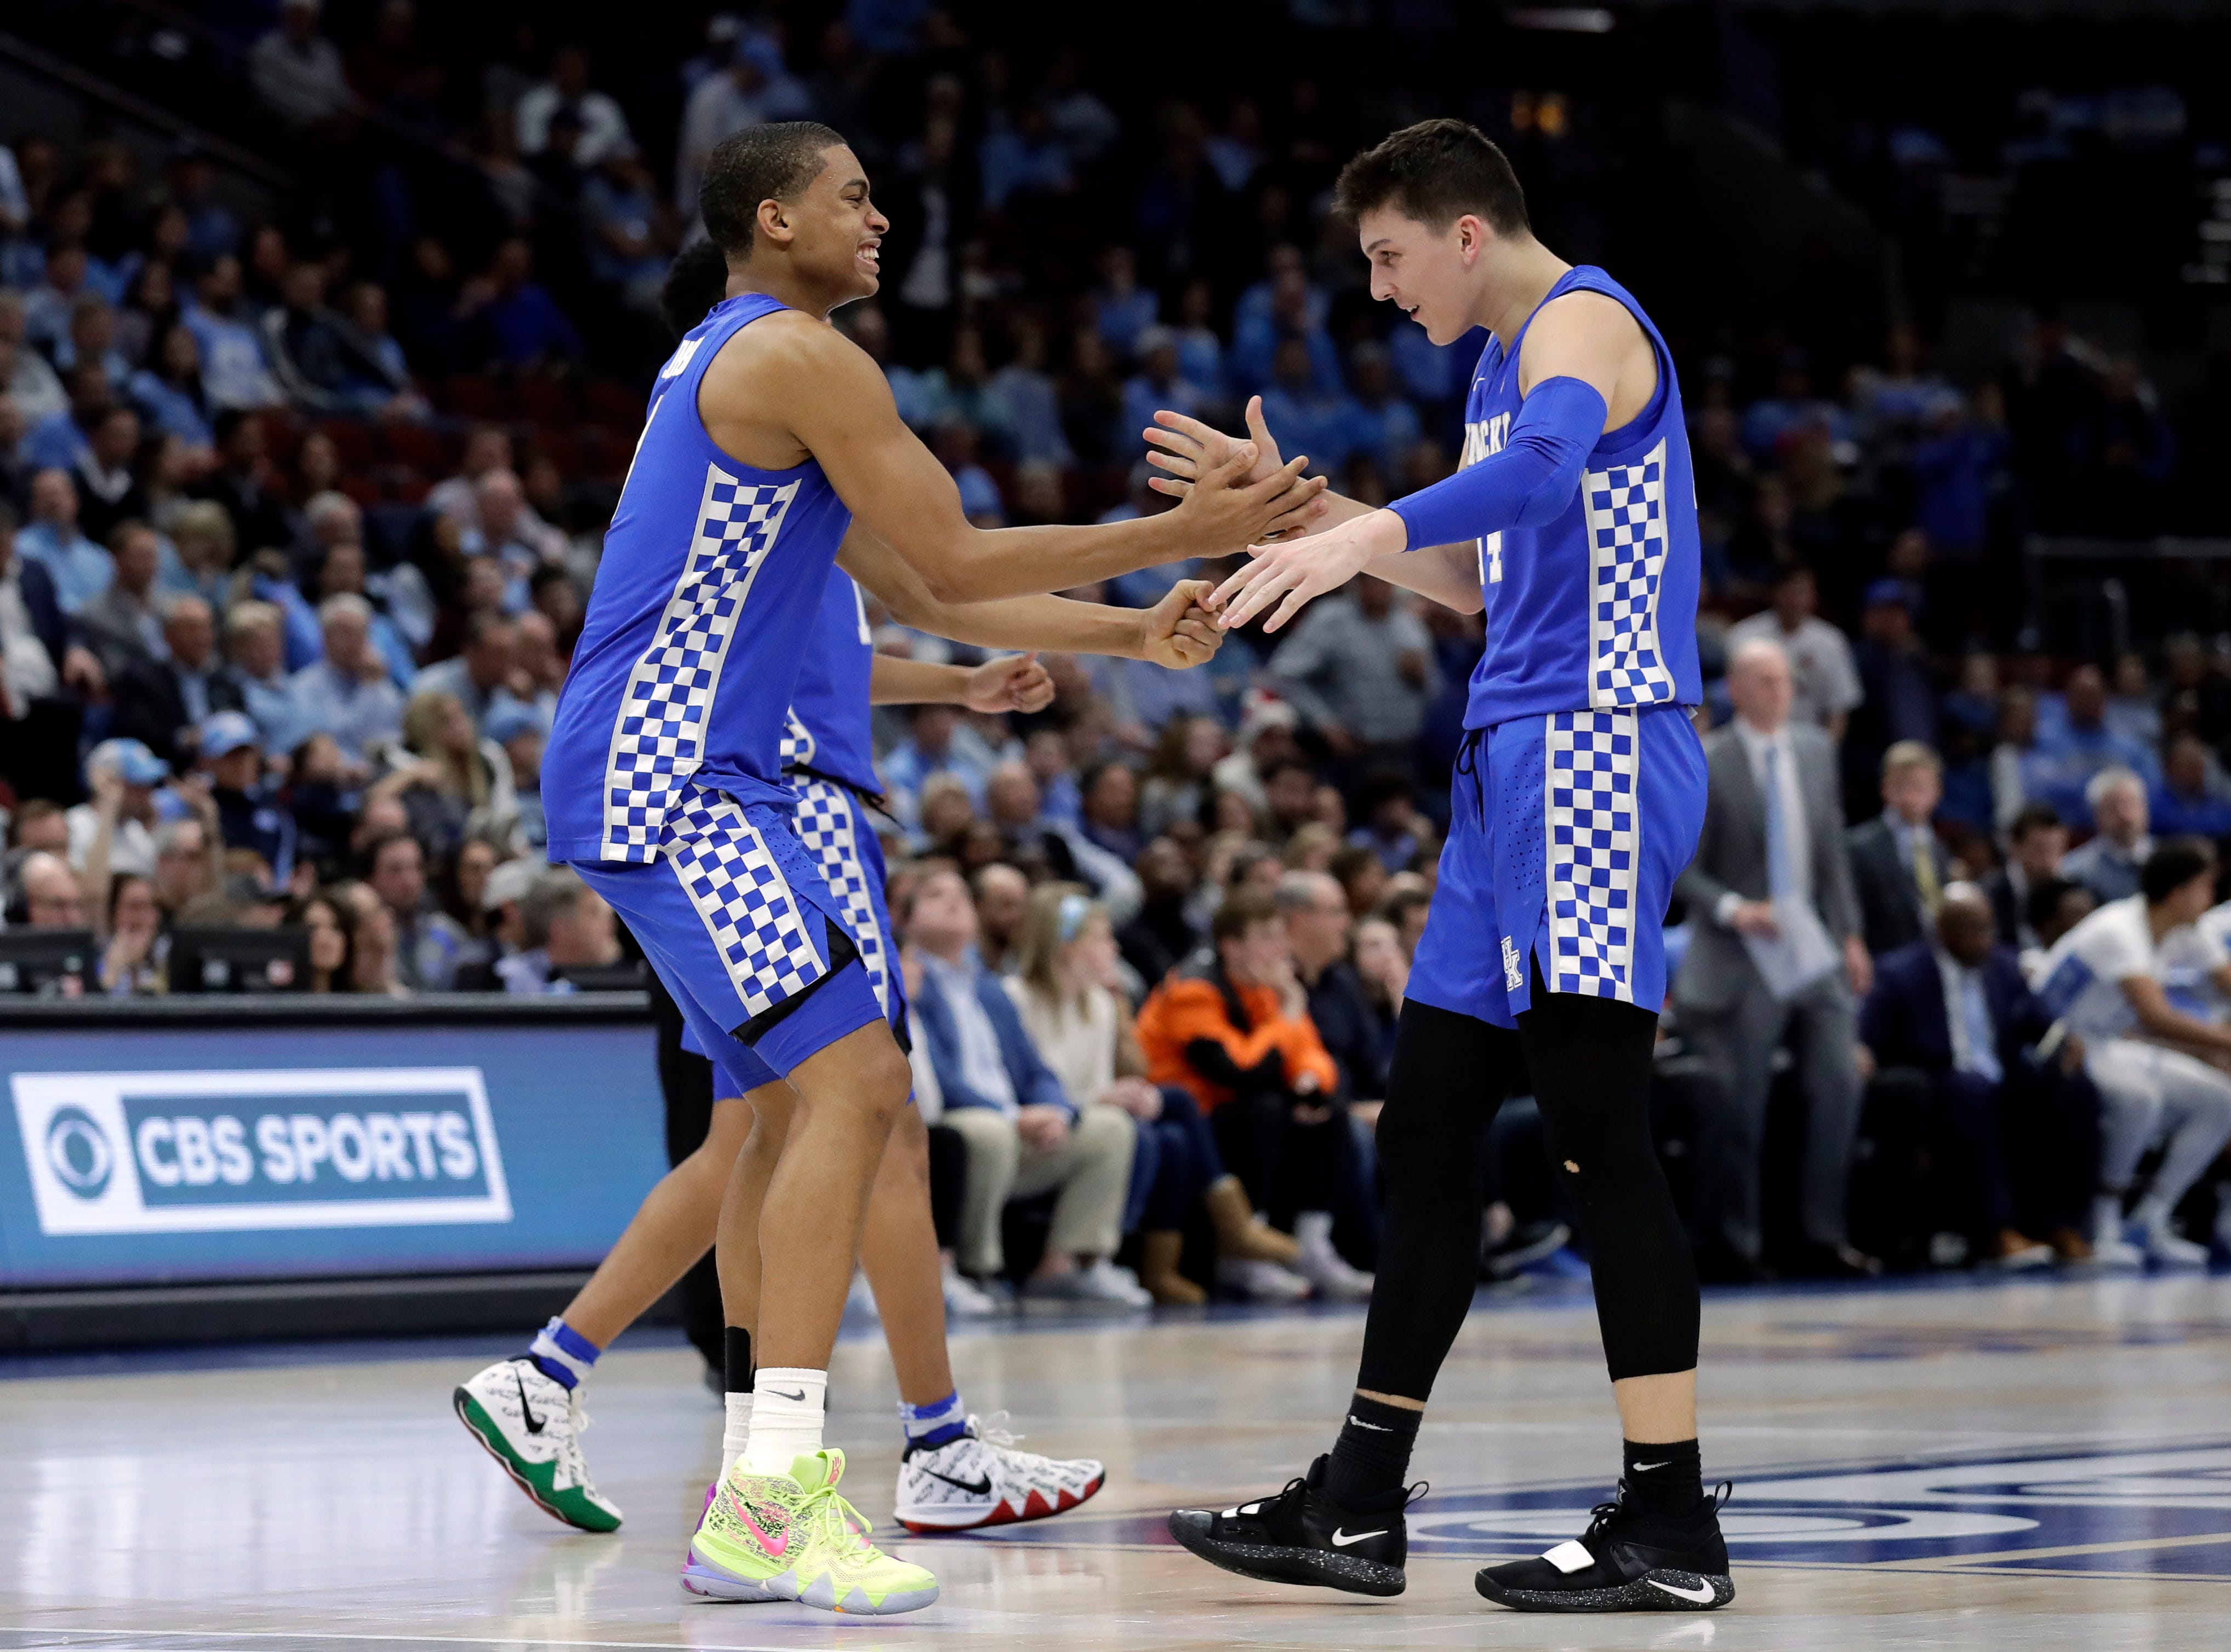 Kentucky guard Keldon Johnson, left, celebrates with guard/forward Tyler Herro during the second half of an NCAA college basketball game against North Carolina in the fifth annual CBS Sports Classic, Saturday, Dec. 22, 2018, in Chicago.